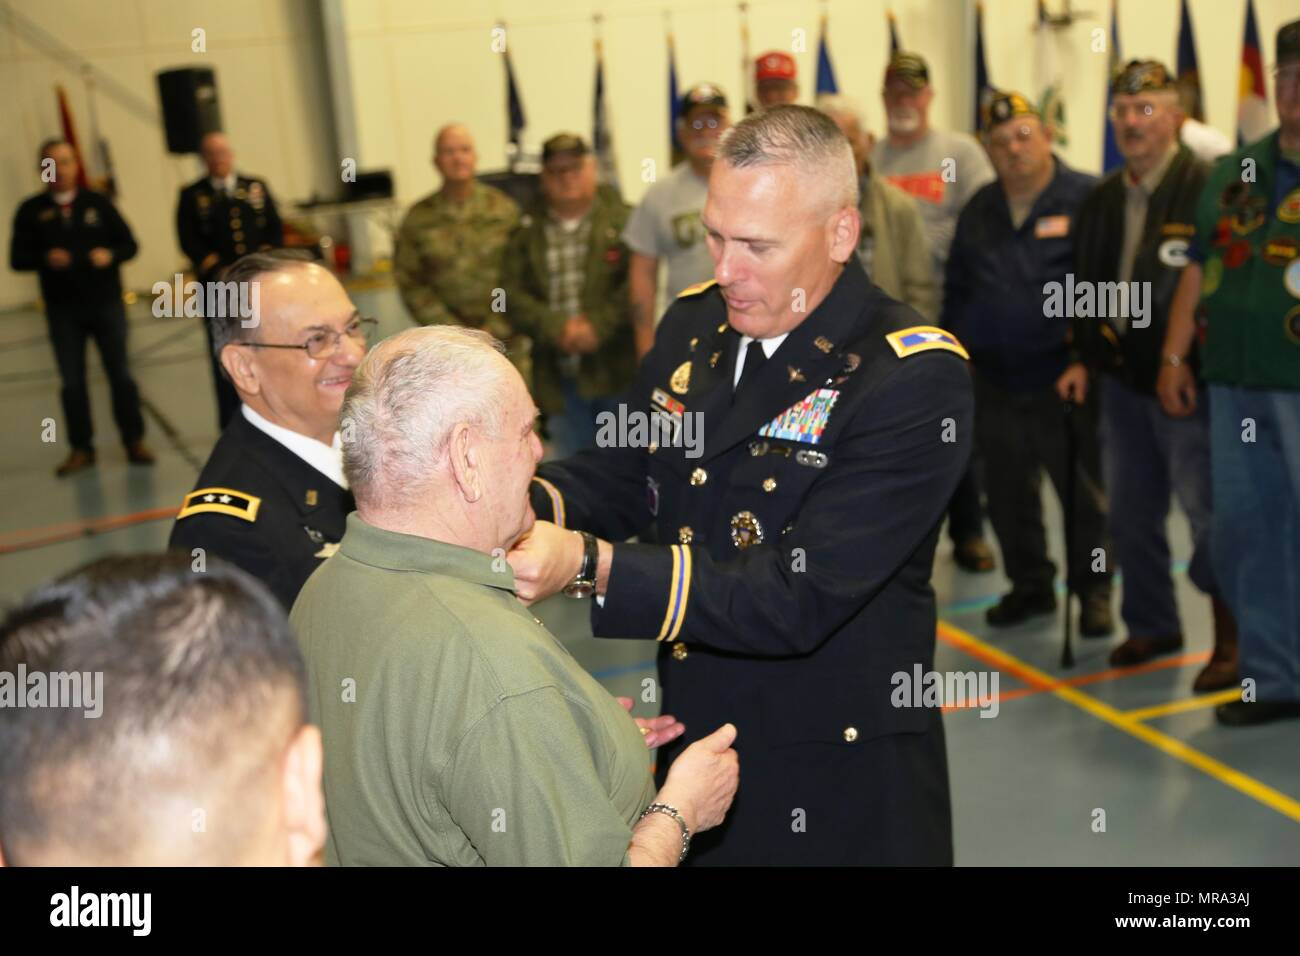 Fort McCoy Garrison Commander Col. David J. Pinter Sr. places a Vietnam Veterans Lapel Pin on retired Command Sgt. Maj. Kenneth Stumpf, a Medal of Honor recipient, during the Vietnam Veterans Welcome Home Ceremony on May 20, 2017, at Fort McCoy, Wis. Each veteran attending the ceremony received a Vietnam Veterans Lapel Pin. The ceremony was one of many taking place around the United States that officially recognizes veterans who served between May 1, 1955, and Nov. 15, 1975. The ceremony also was held in conjunction with the 2017 Fort McCoy Armed Forces Day Open House. (U.S. Army Photo by Scot Stock Photo